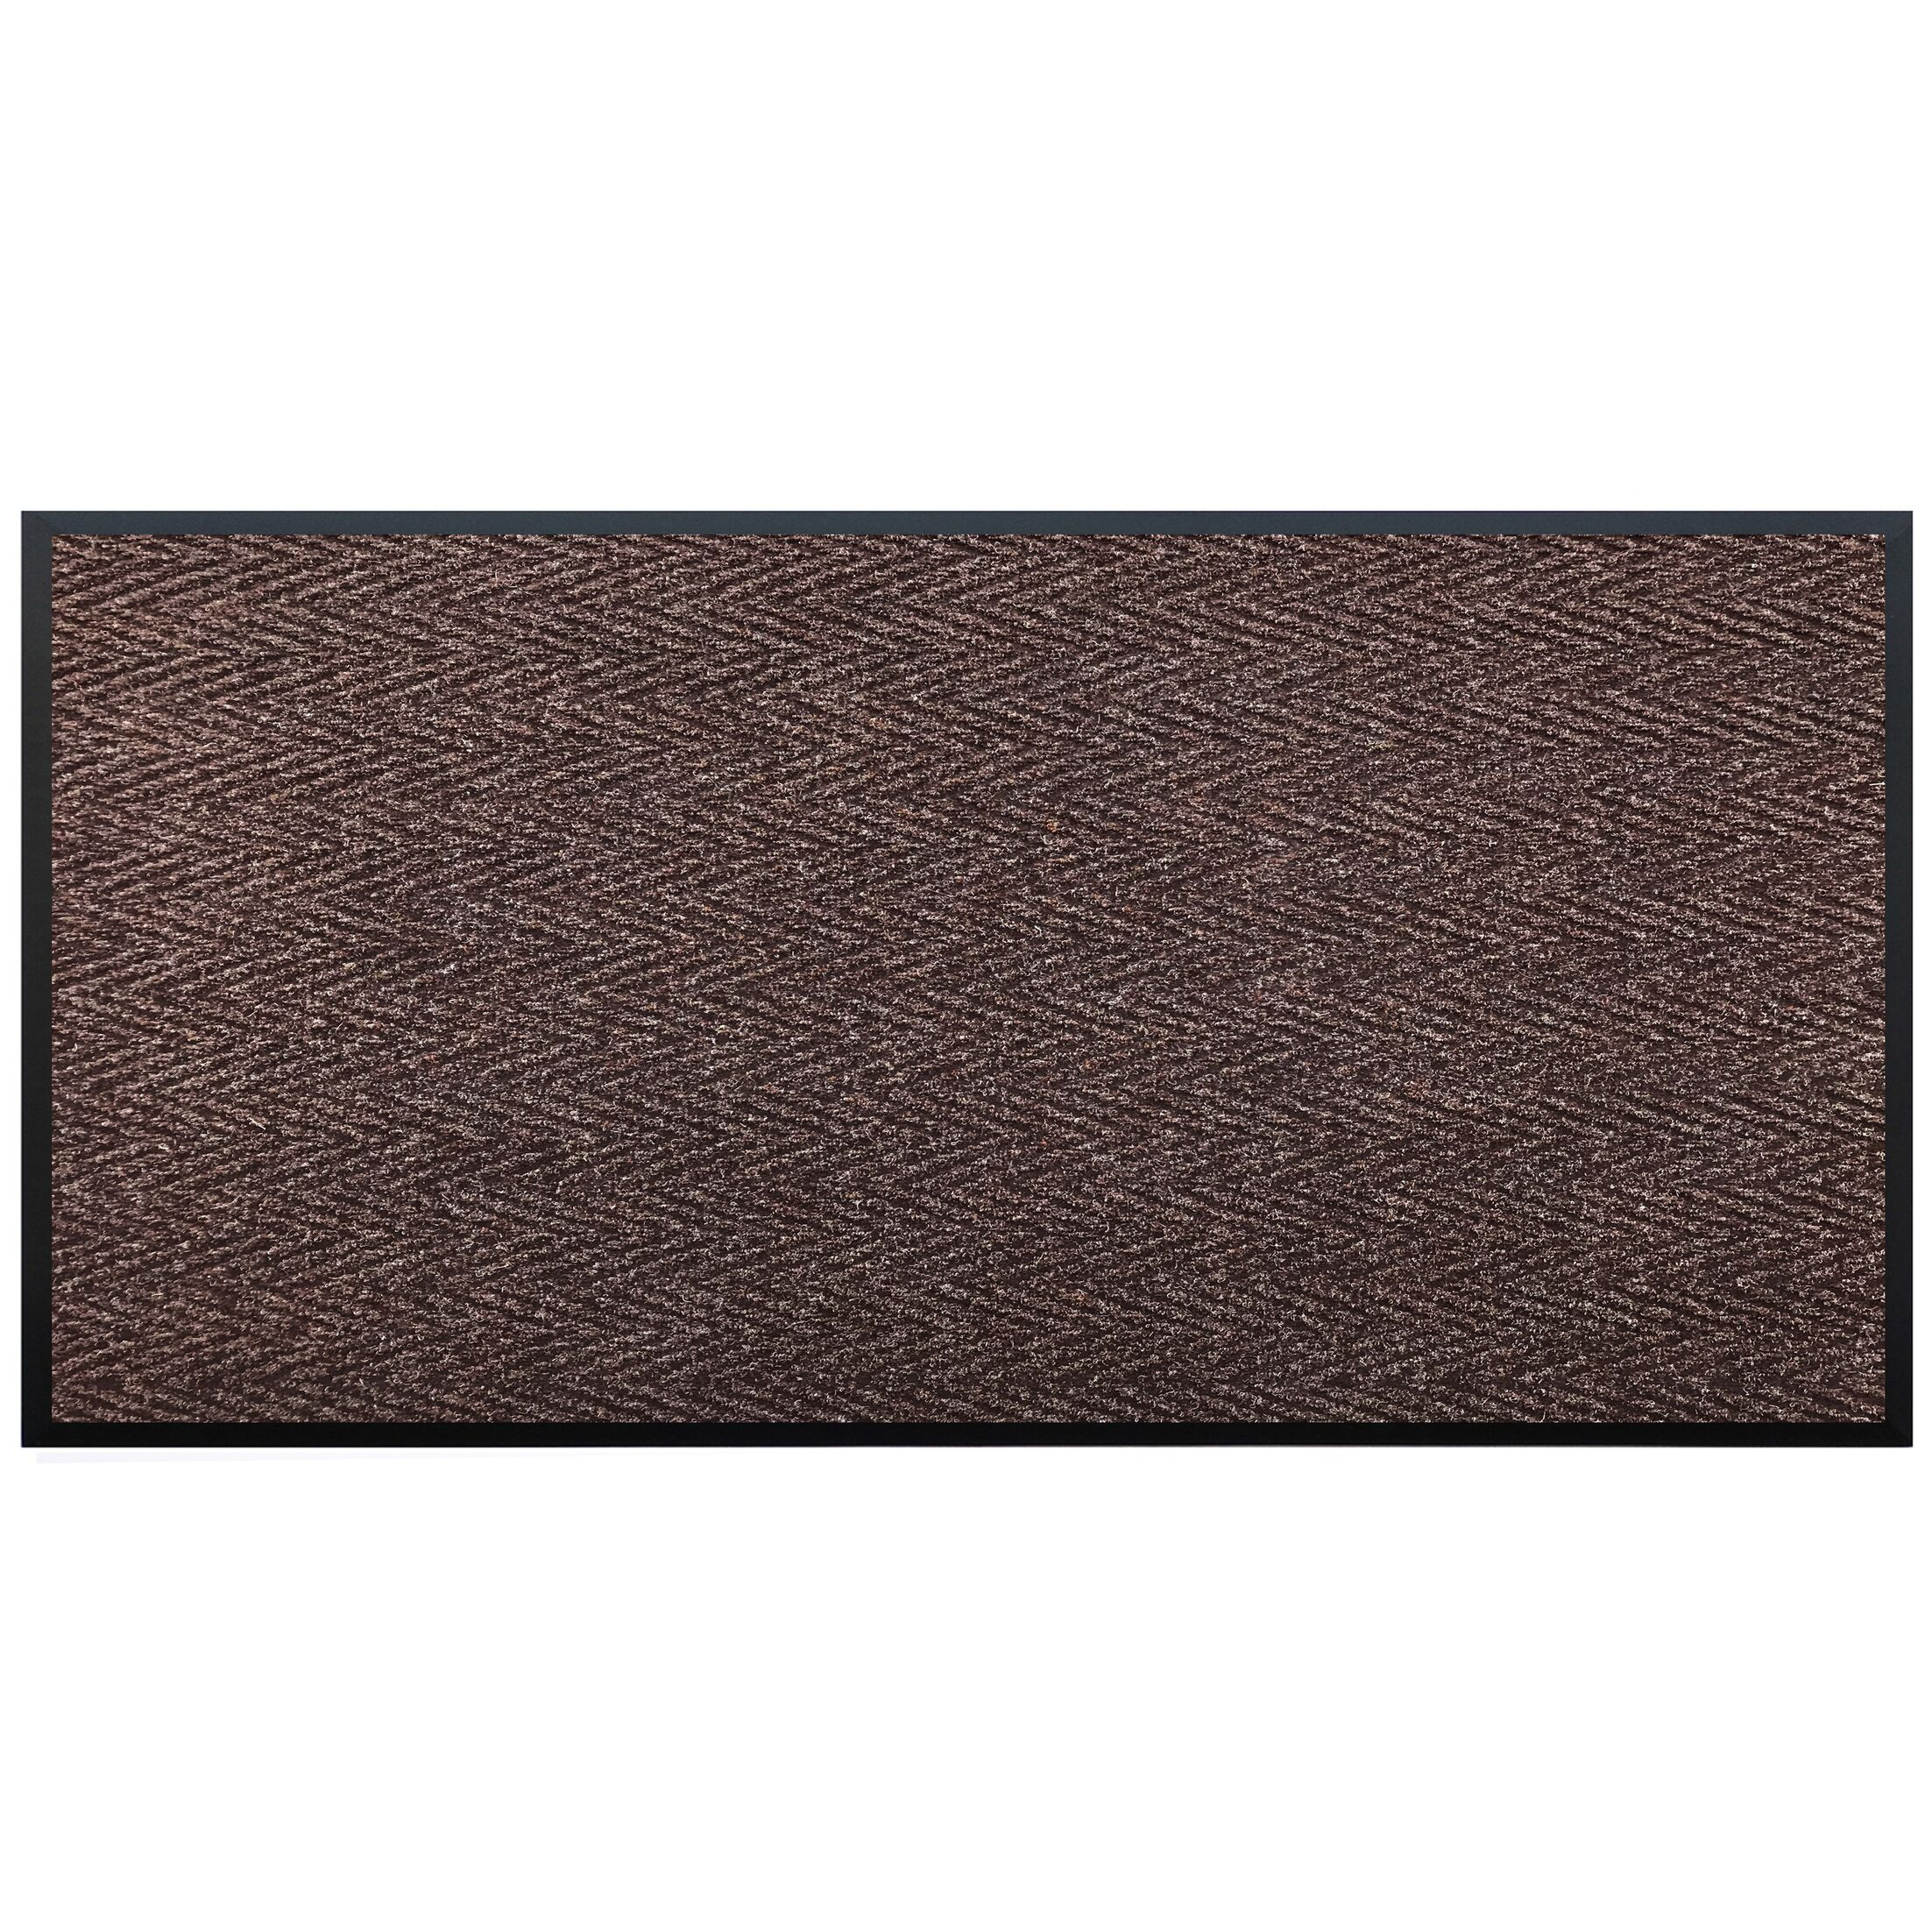 Leavy Vinyl Backed Commercial Doormat Color: Brown, Mat Size: Rectangle 3' x 6'